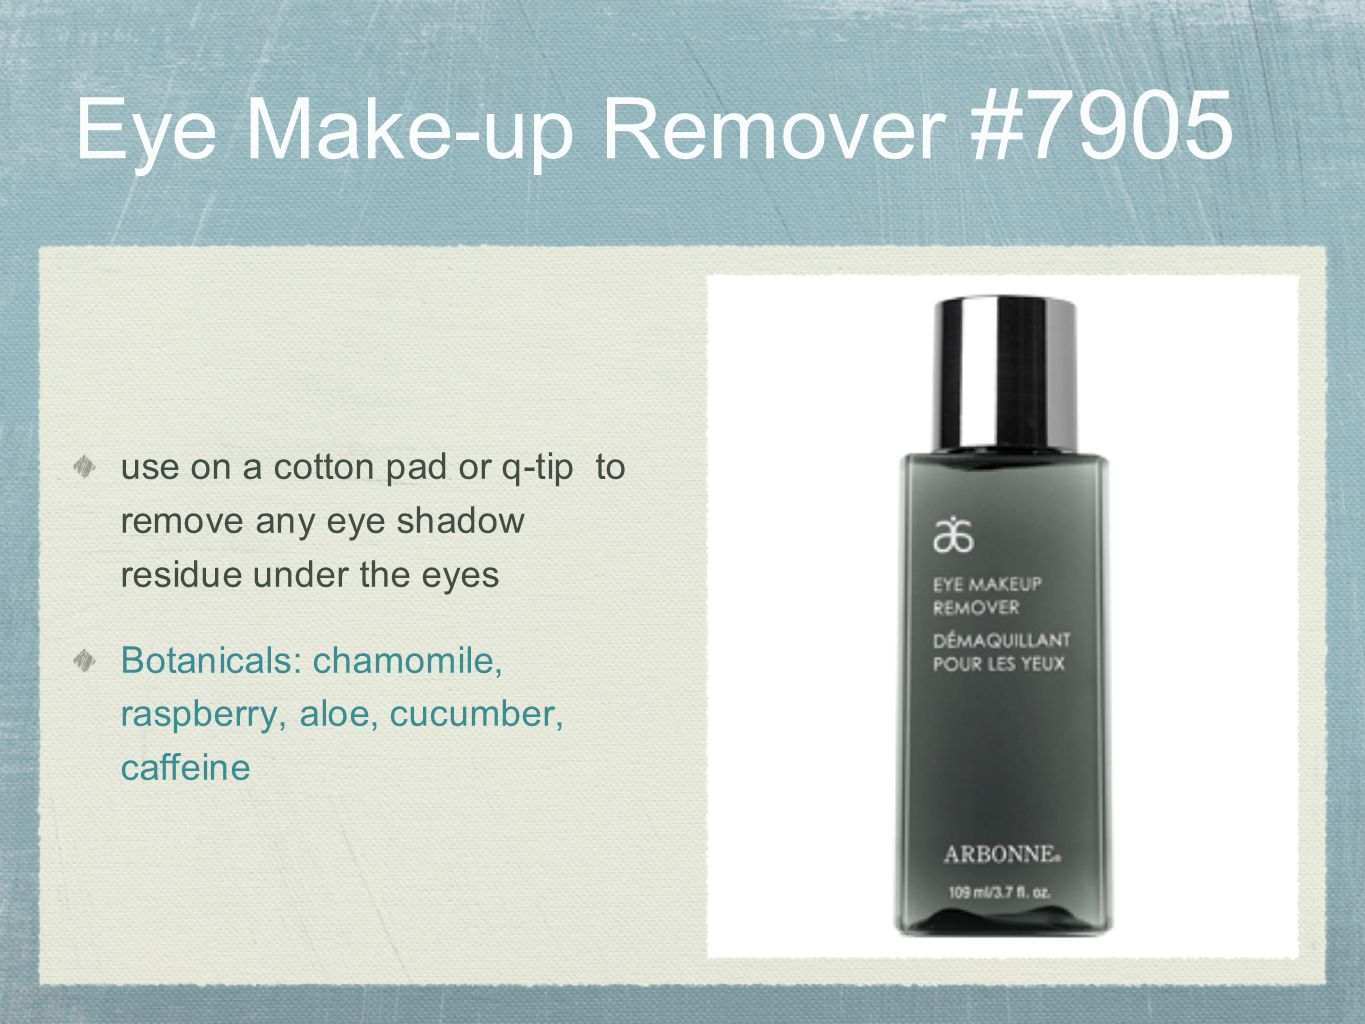 Eye Make-up Remover #7905 use on a cotton pad or q-tip to remove any eye shadow residue under the eyes.